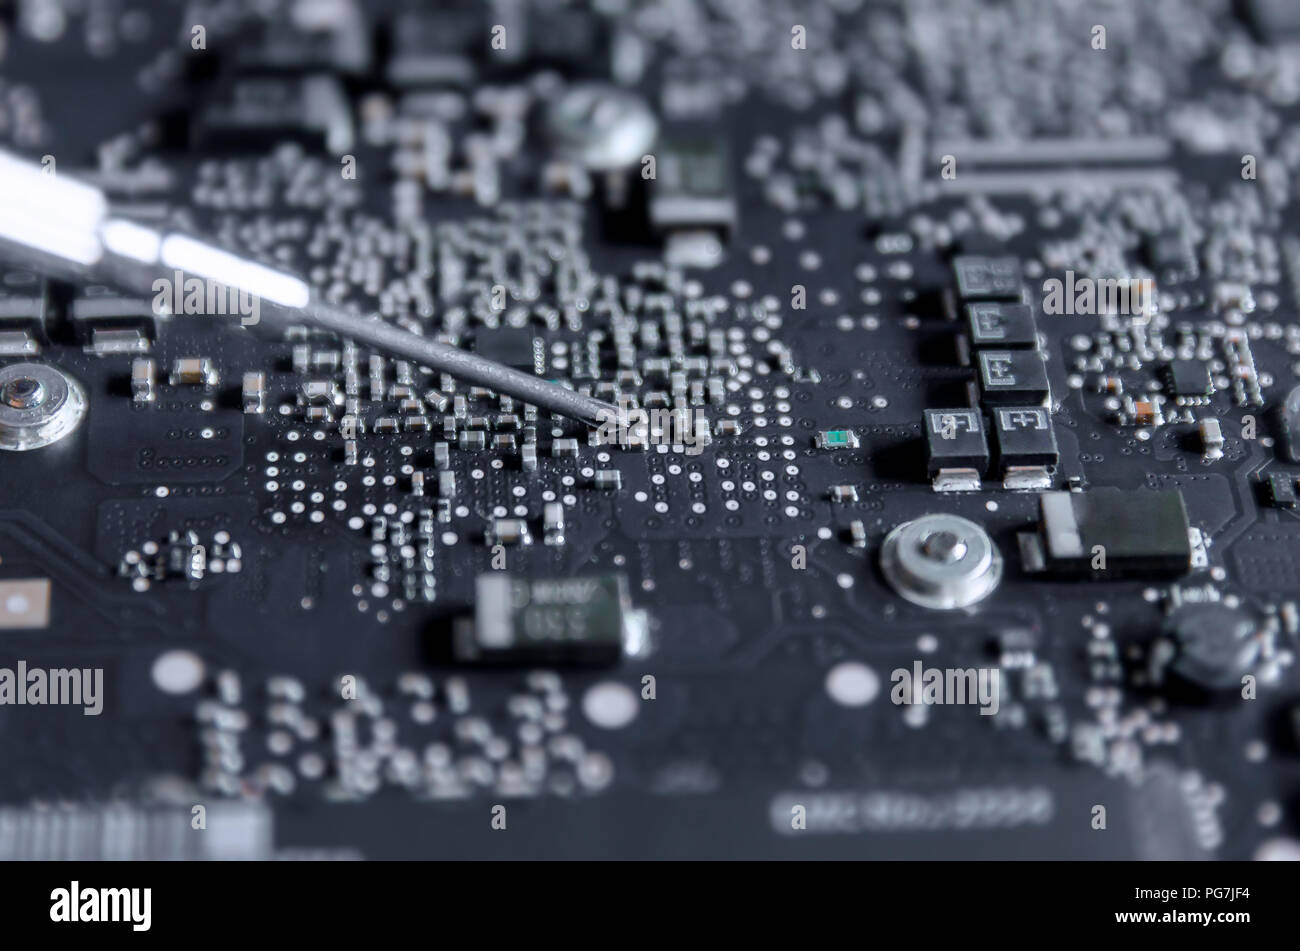 Close Up Of Circuit Board And Electronic Computer Hardware Repair Repairing Technology Laptop Control Panel Motherboa